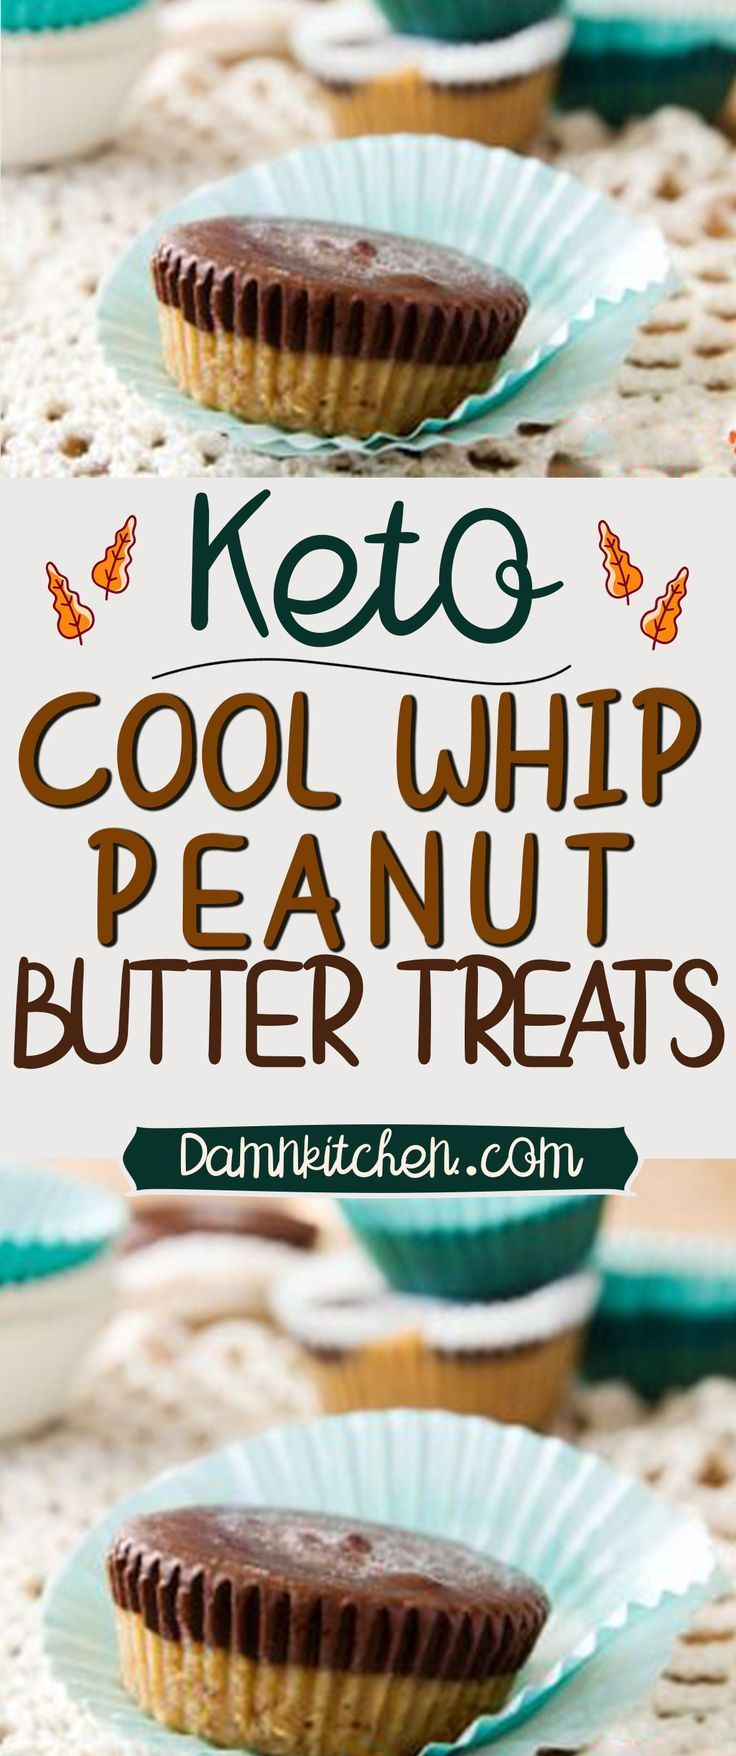 Cool Whip Peanut Butter Treats #Low_Carb_Recipes #keto_recipes #keto_diet_for_beginners #keto #keto_snacks #ketogenic_diet #dessert #biscuits #lemon #cookies #salad #apple #cranberries #cookiesalad